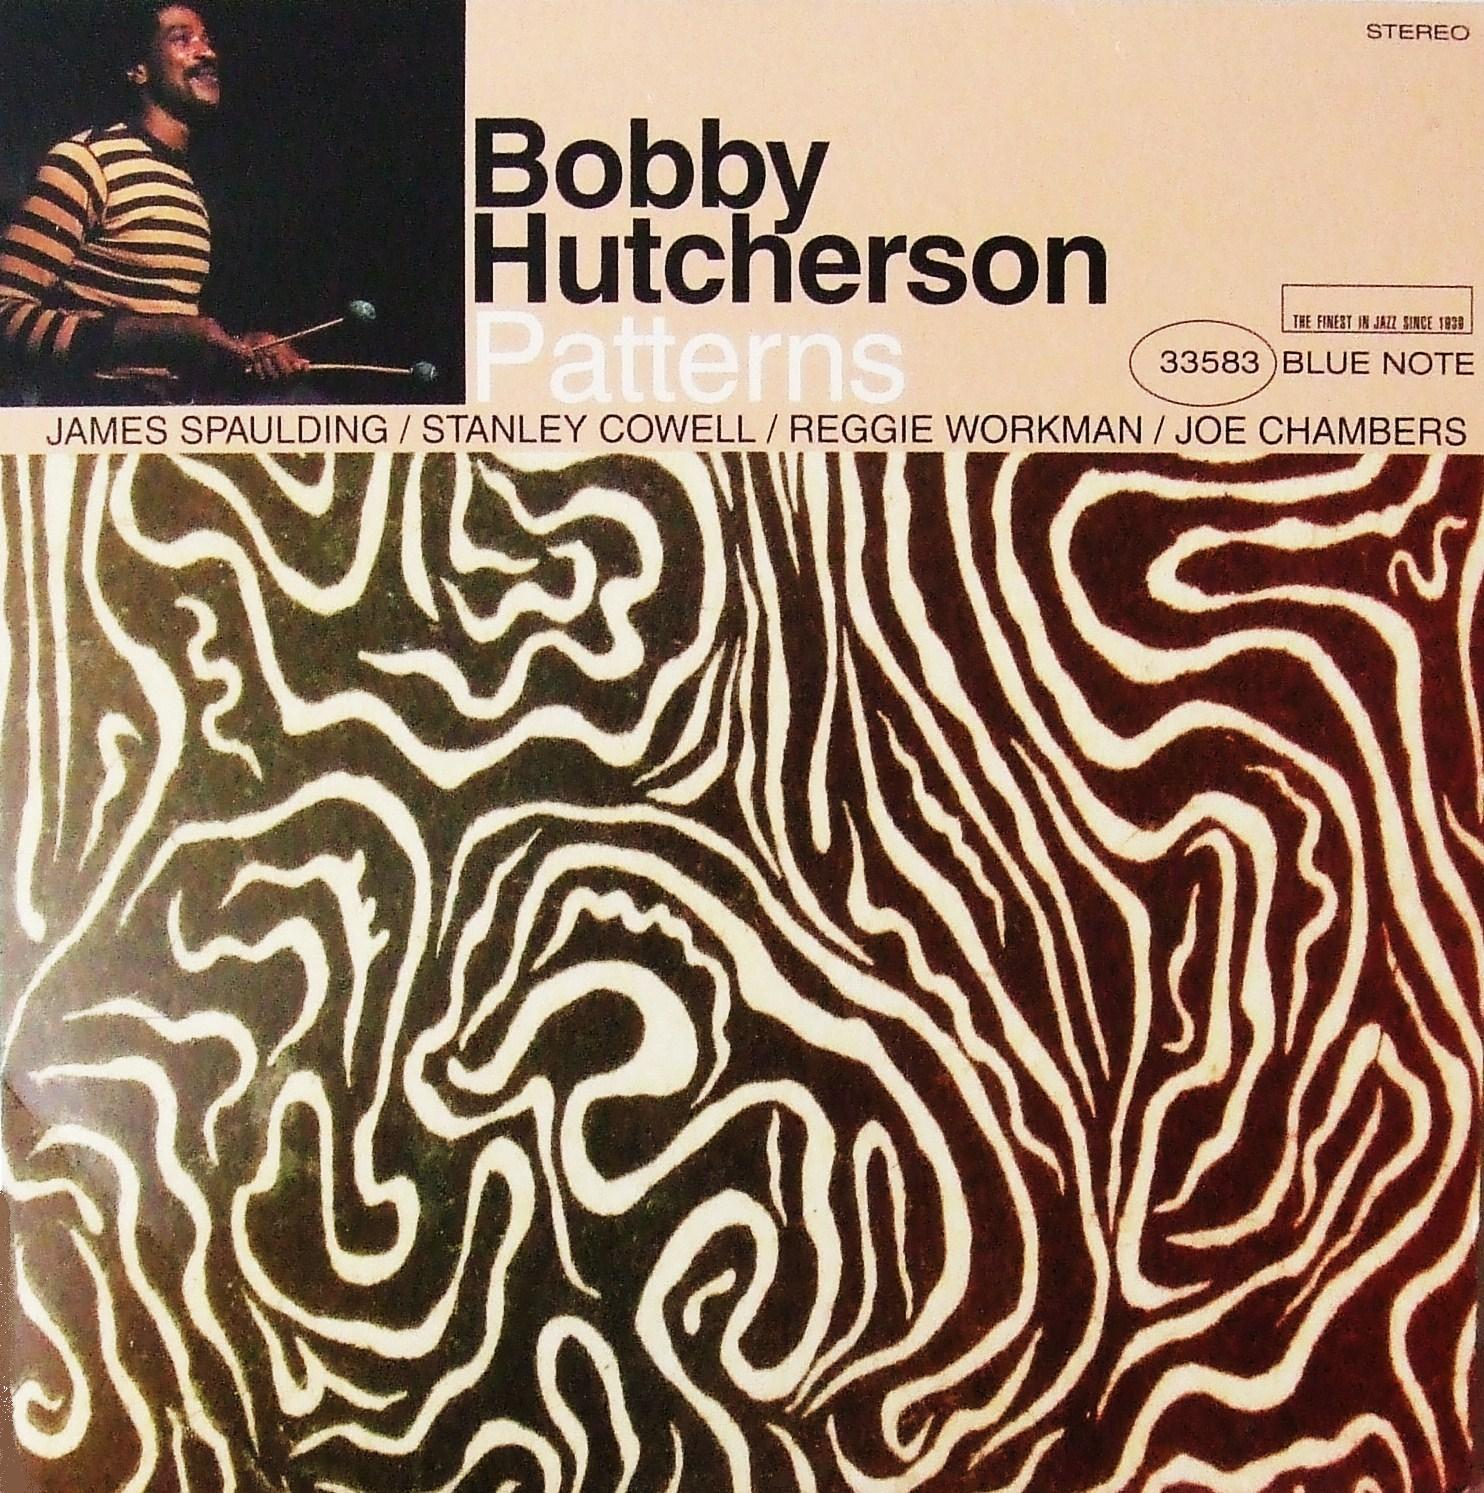 Bobby Hutcherson Patterns